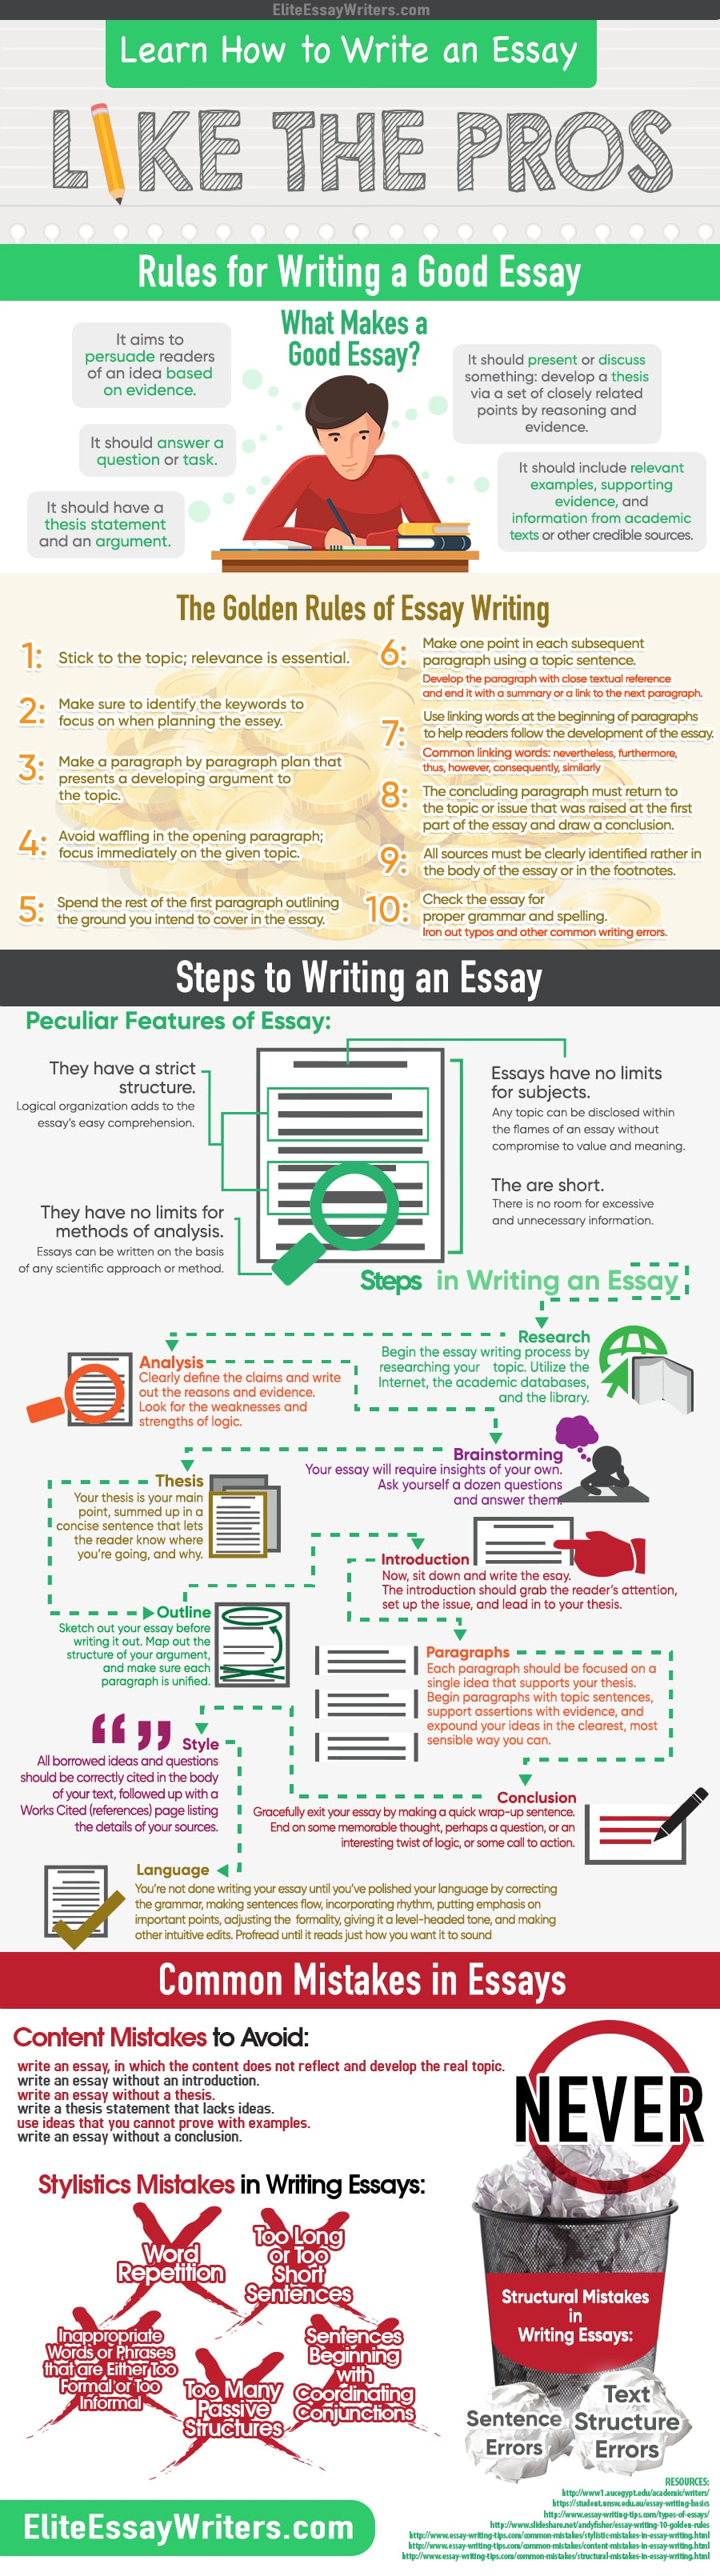 Argumentative Essay Thesis Statement Examples Essay Writing Tips Essay Writings In English also Essay About Good Health Top Tips On How To Write An Essay And How To Get Your Essay Done Essay In English